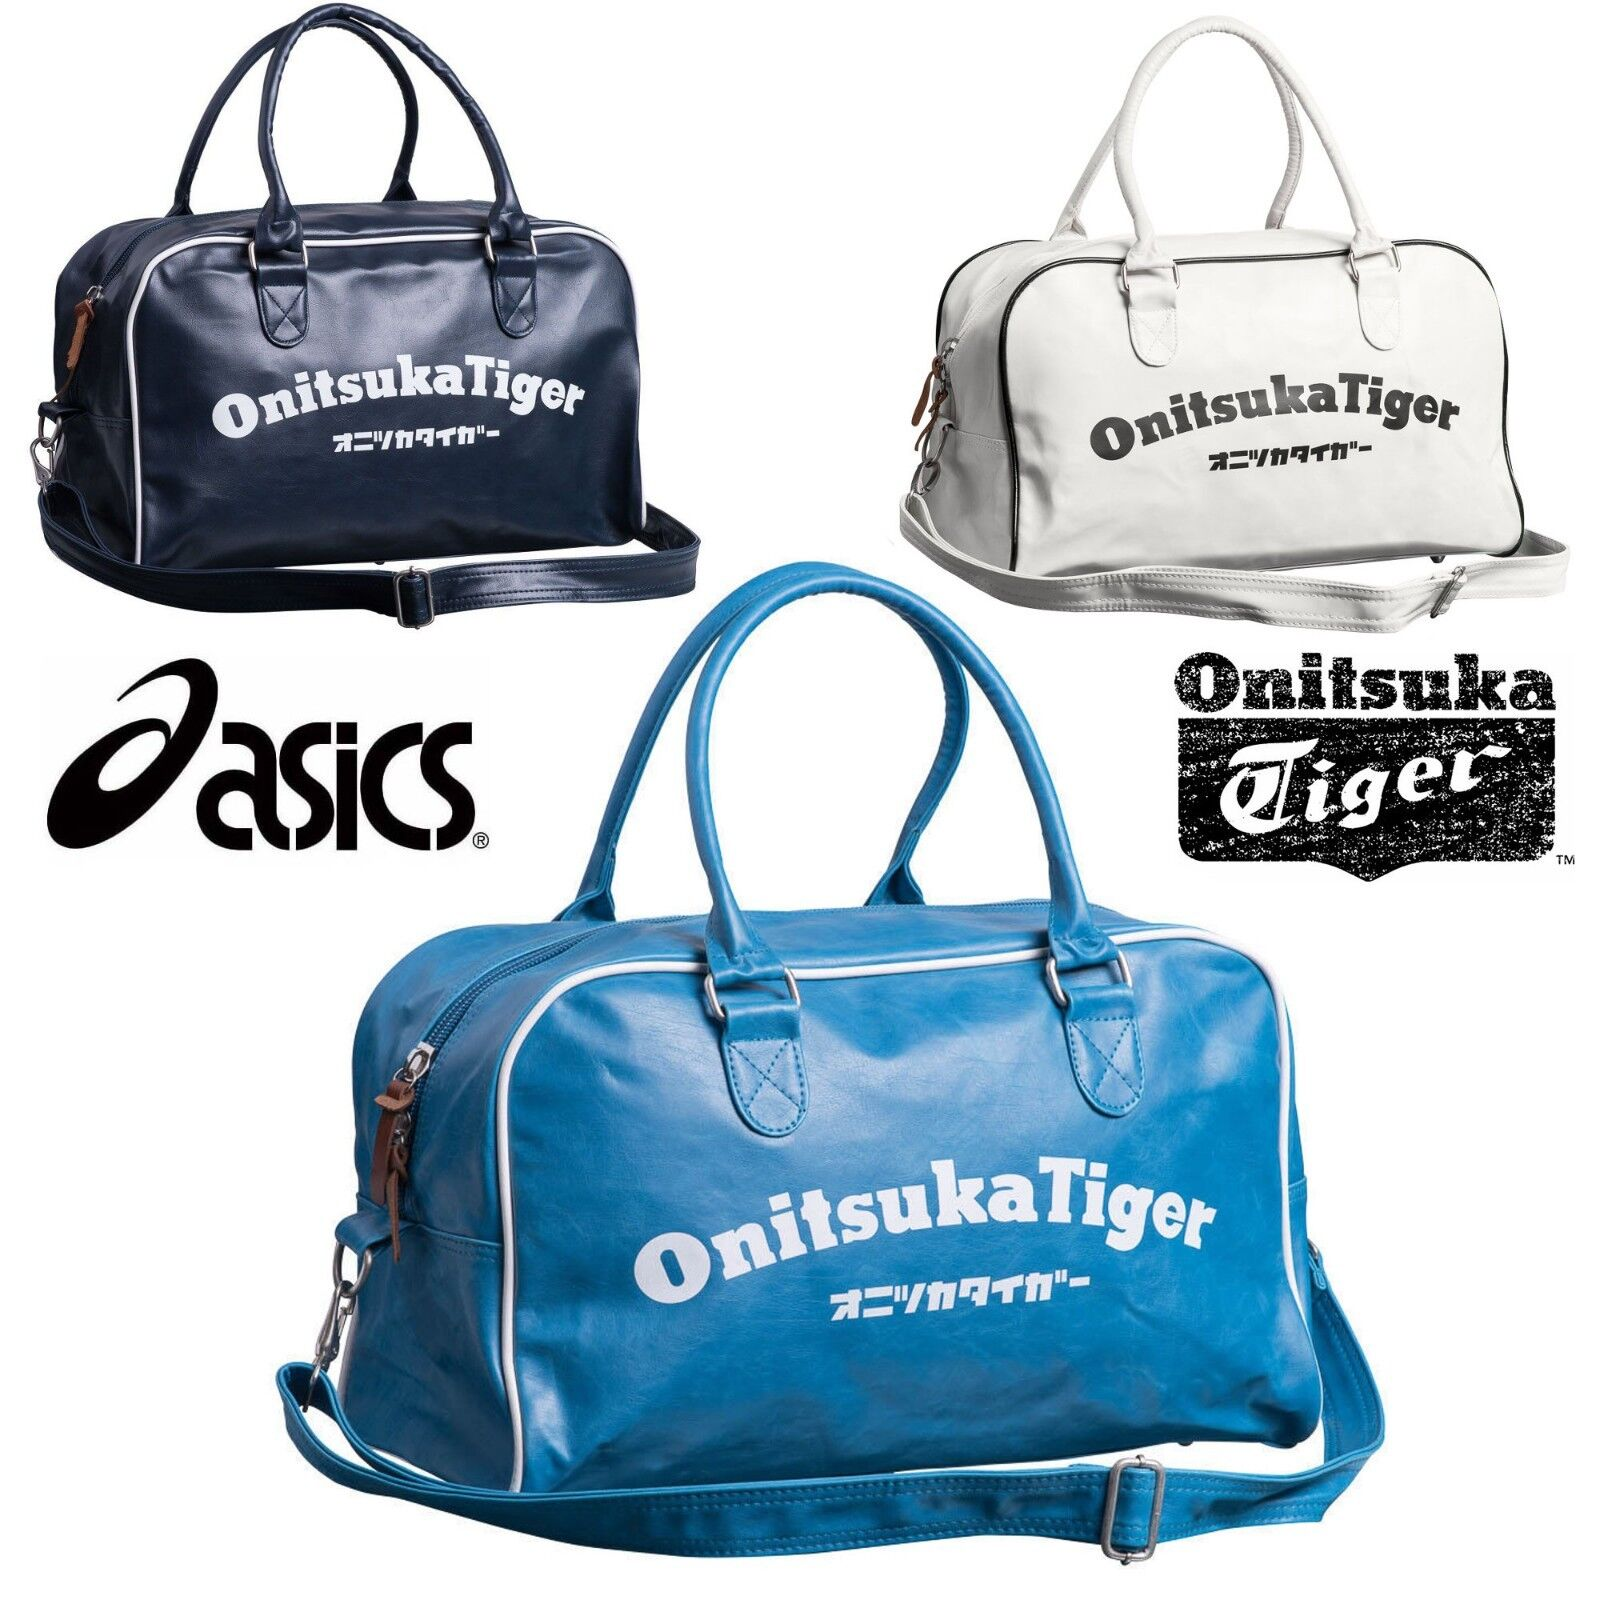 24bc369d95b6 Details about Asics Onitsuka Tiger Sports Retro Duffle Bags Blue White Navy  Gym Holdalls